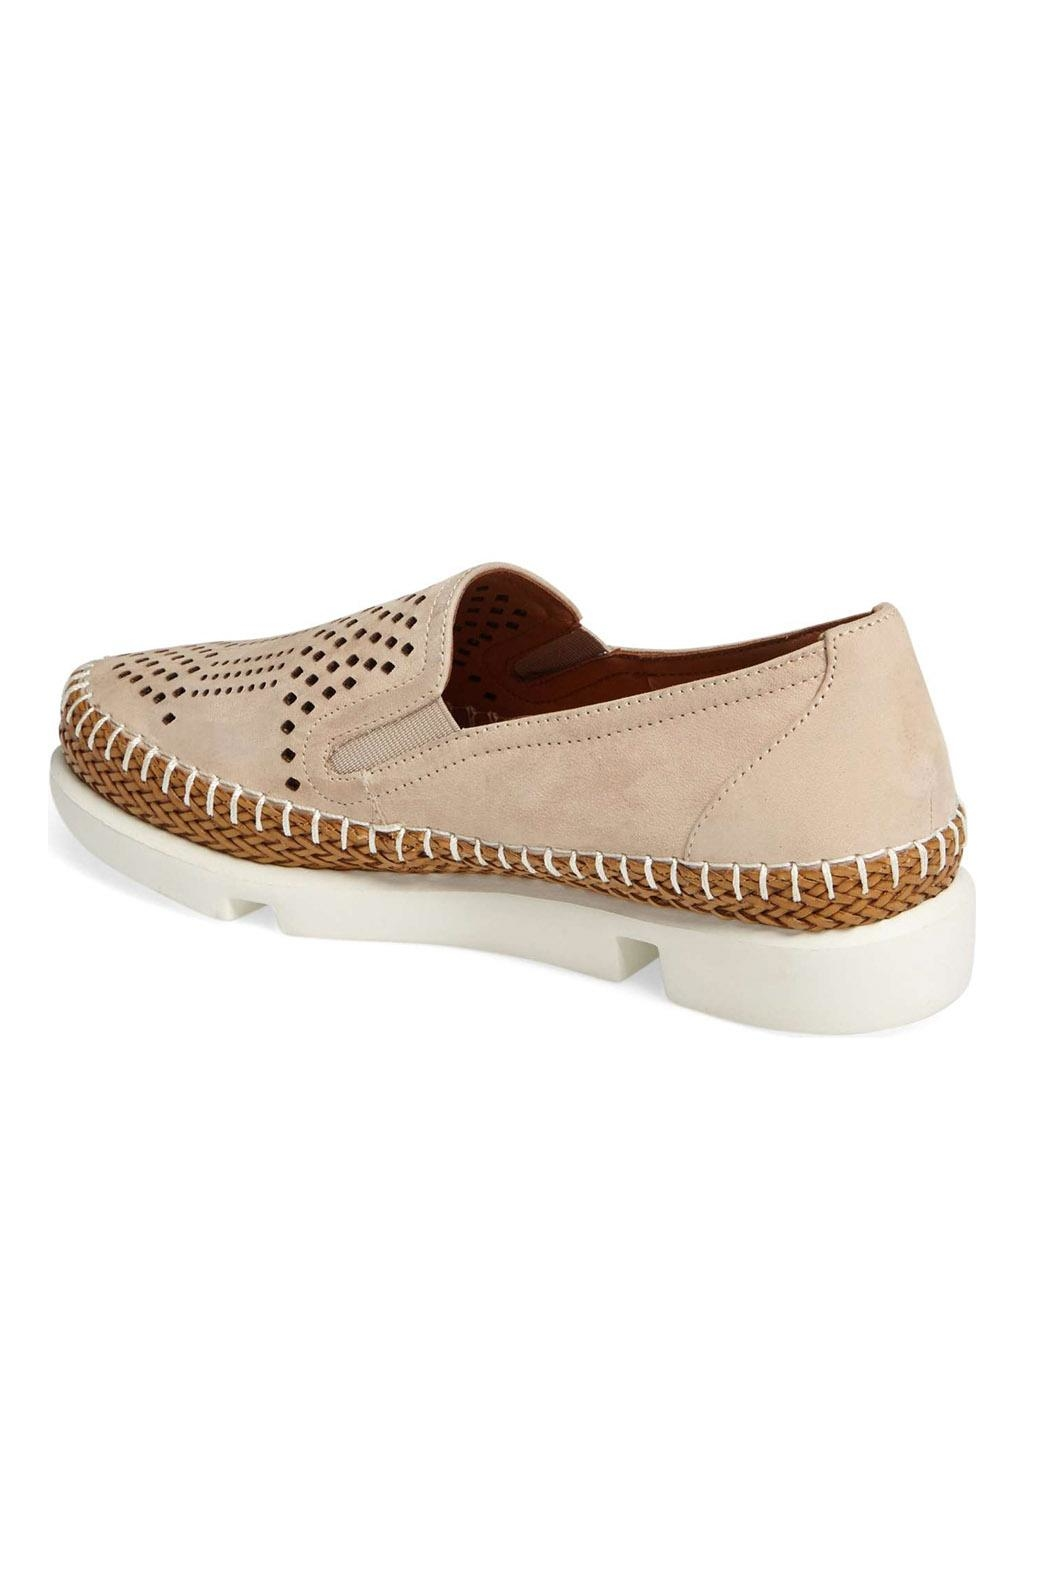 L'Amour Des Pieds Stazzema Slip-On - Side Cropped Image